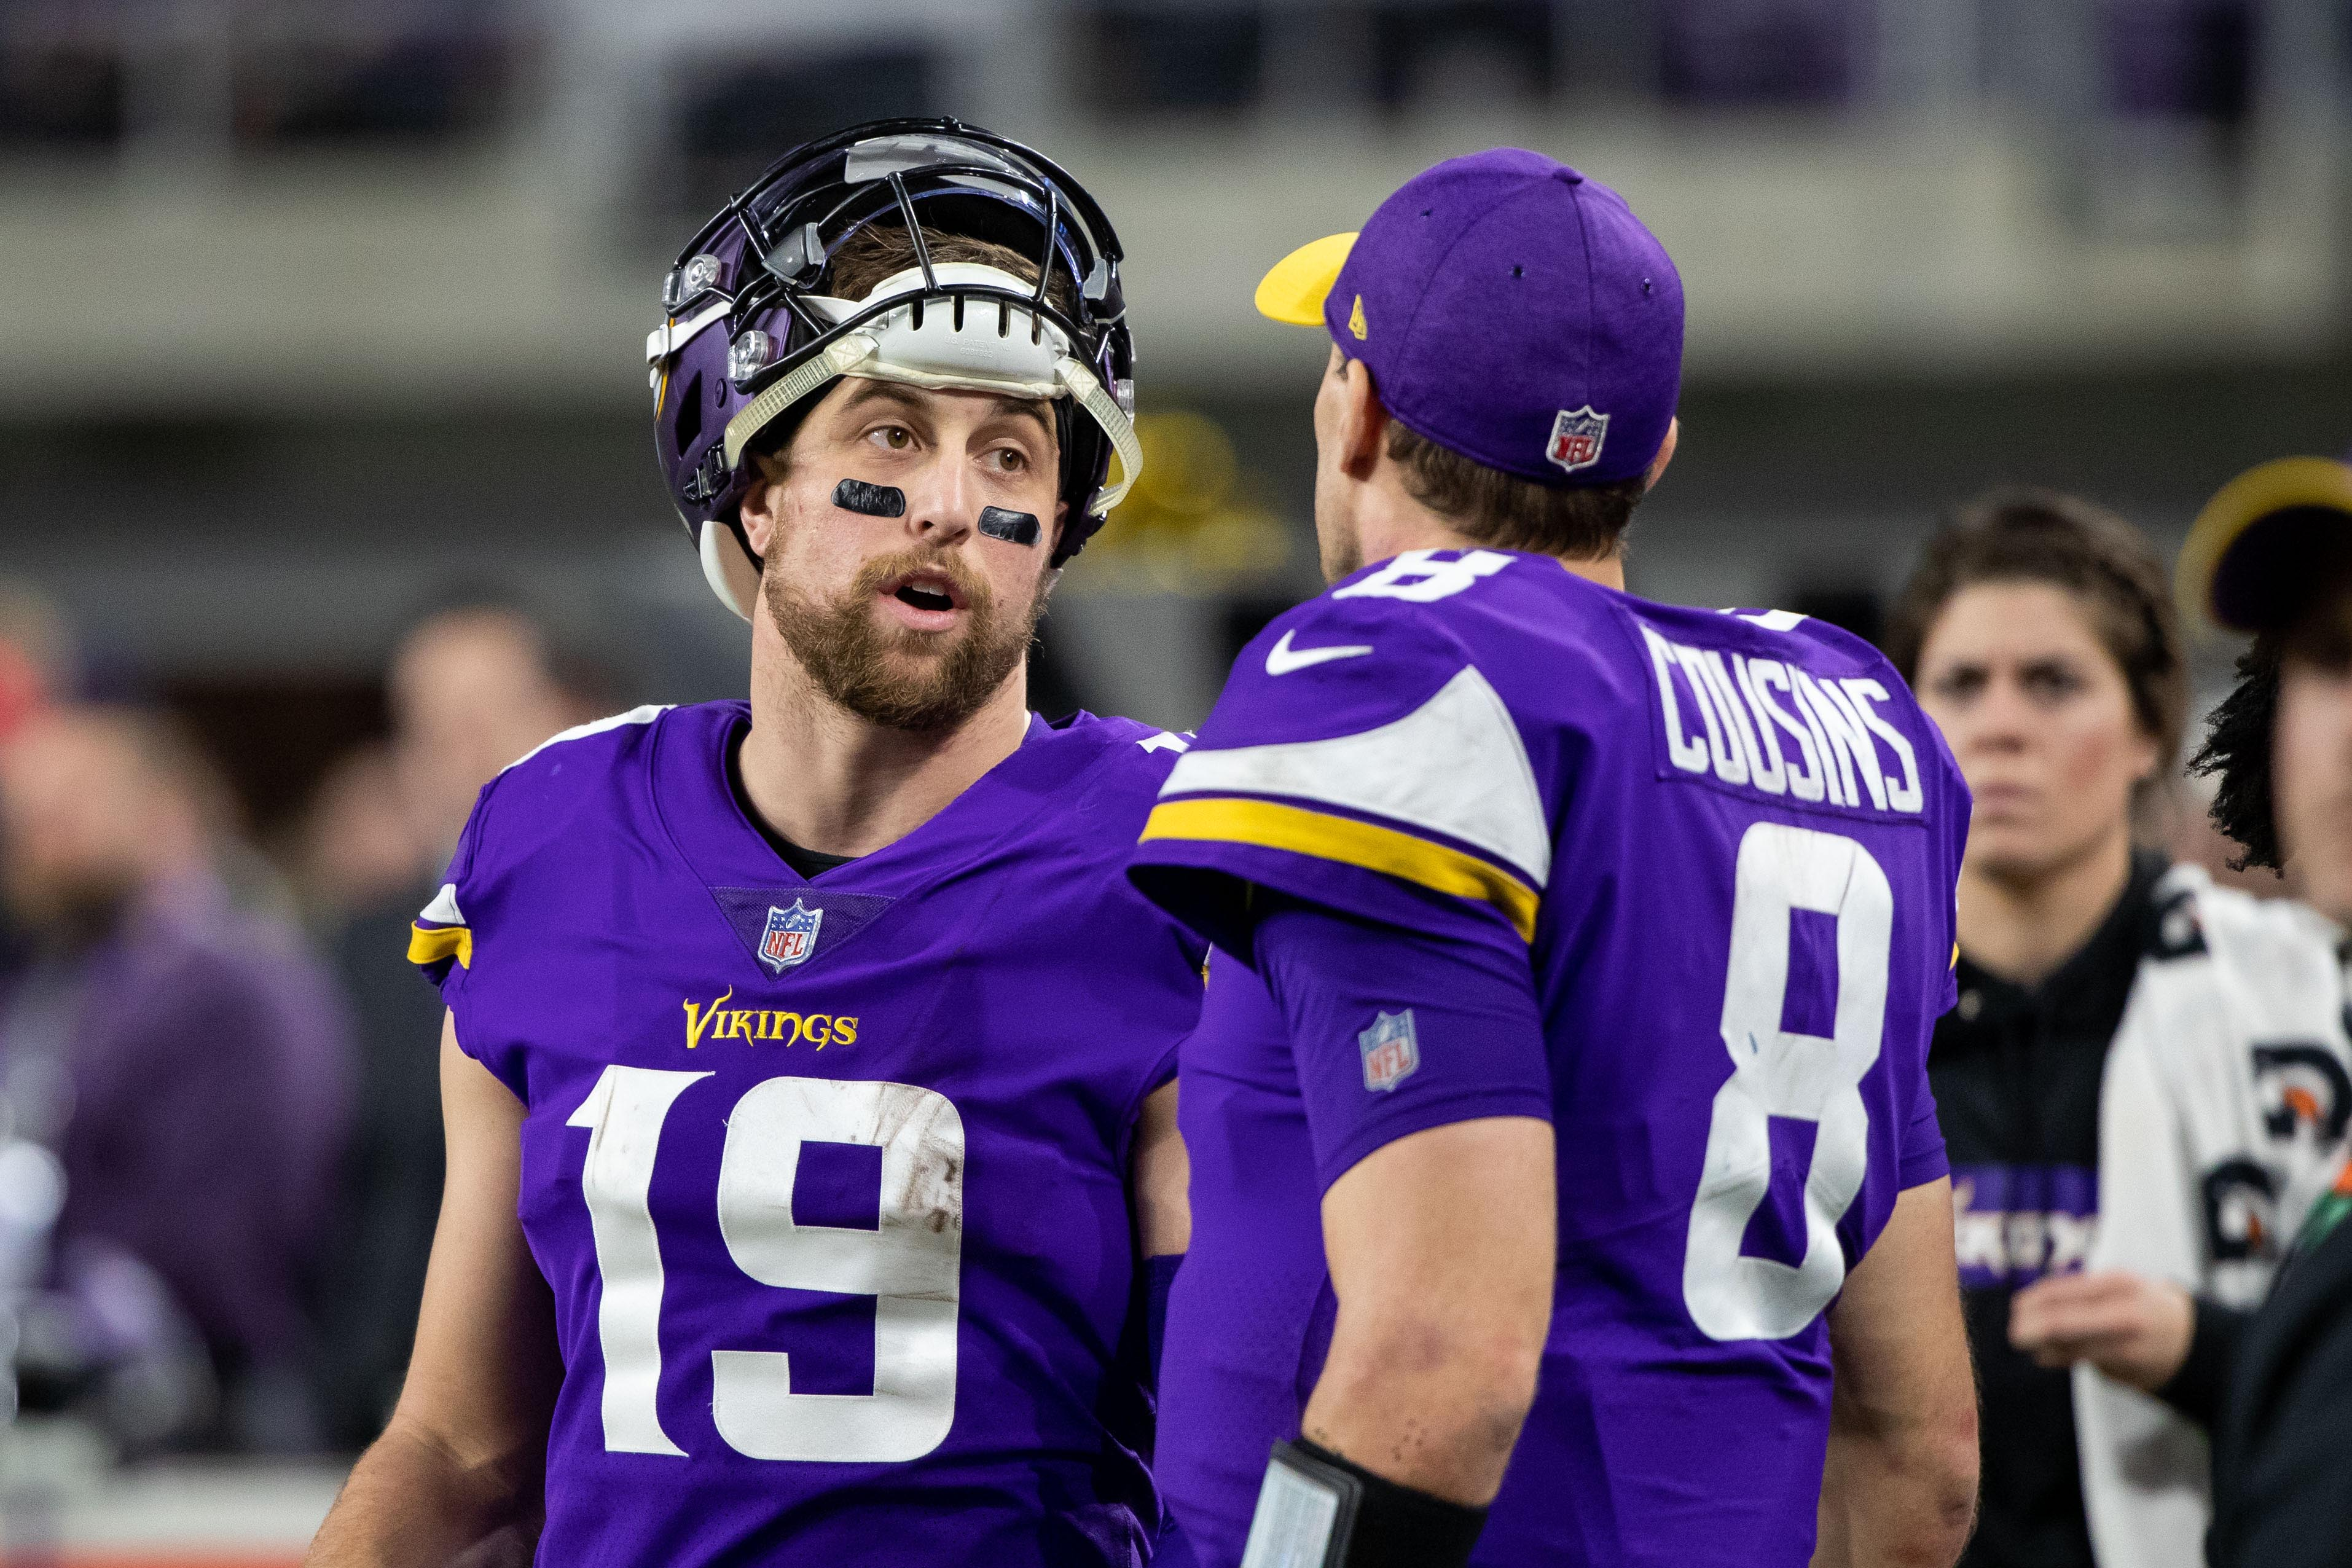 Dec 30, 2018; Minneapolis, MN, USA; Minnesota Vikings wide receiver Adam Thielen (19) talks to quarterback Kirk Cousins (8) on the sidelines in the fourth quarter against Chicago Bears at U.S. Bank Stadium. Mandatory Credit: Brad Rempel-USA TODAY Sports